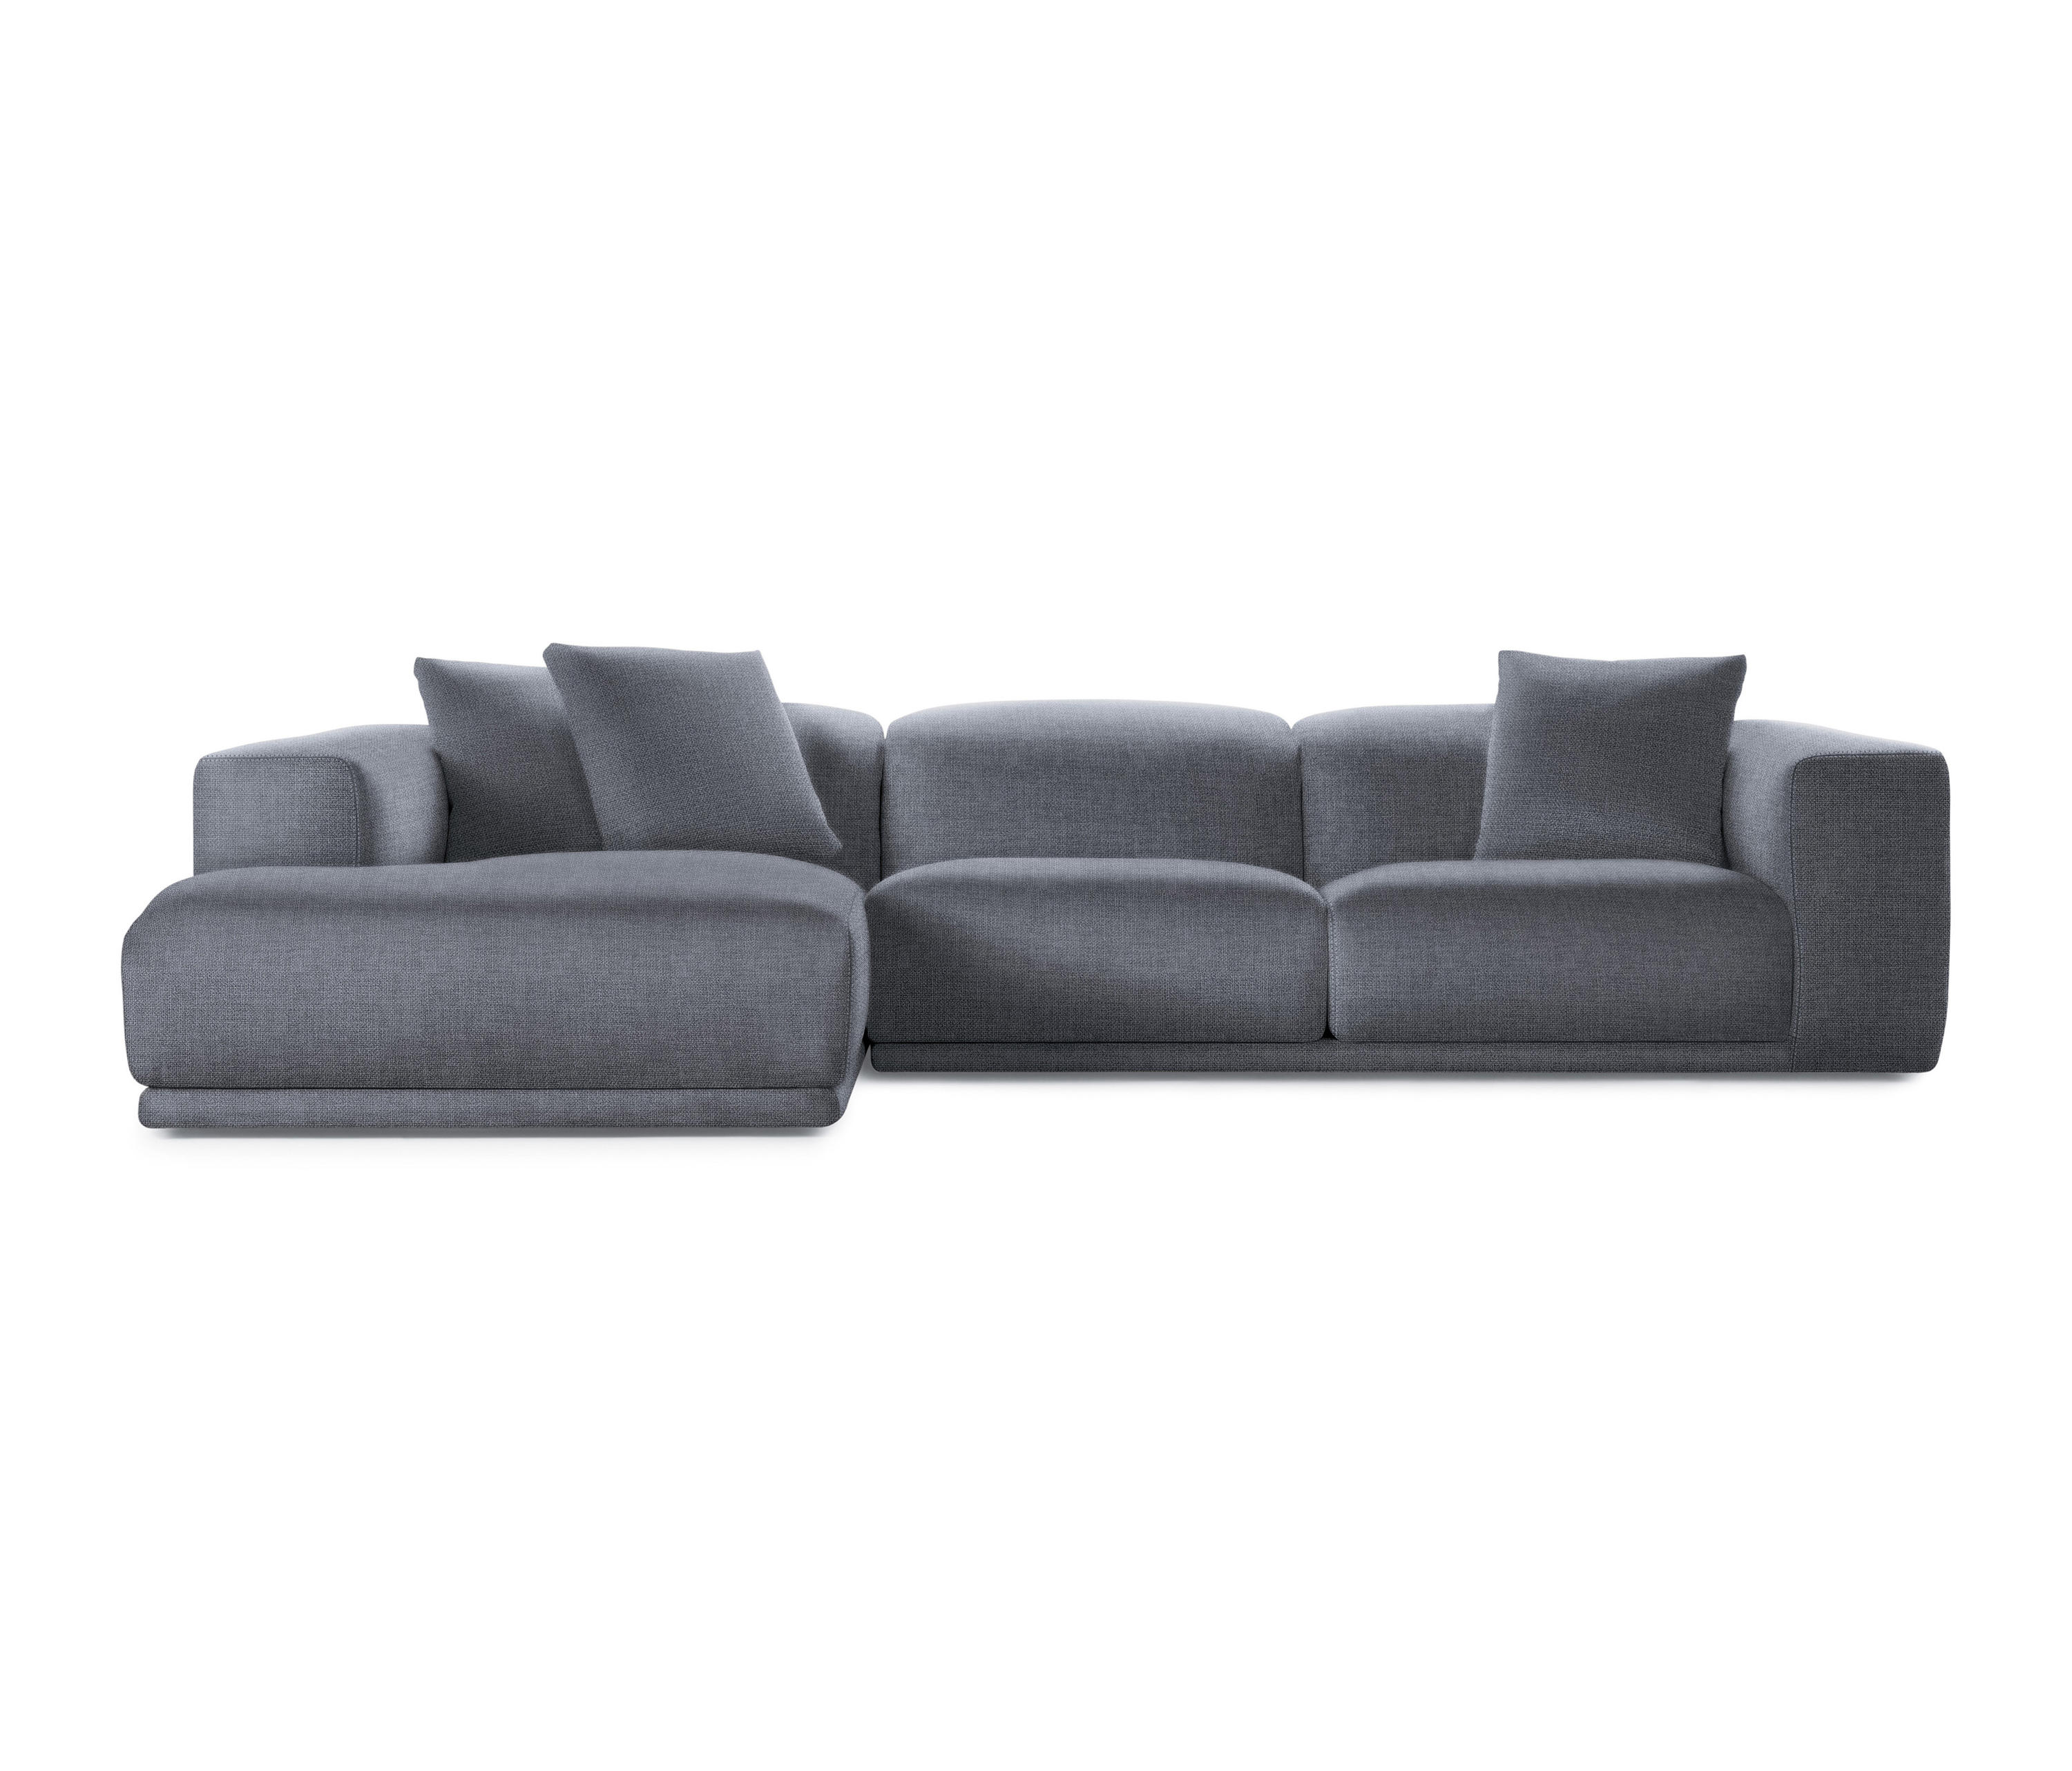 Sofa Furniture Design: KELSTON SECTIONAL WITH CHAISE